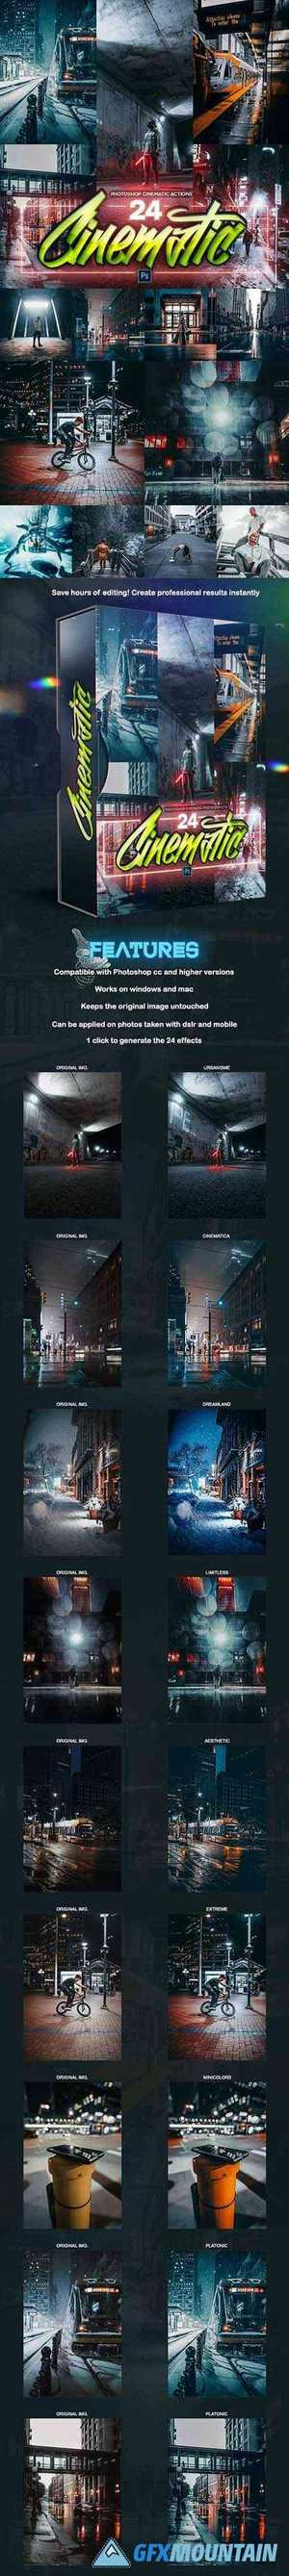 24 Cinematic PRO Photoshop Actions 28734799